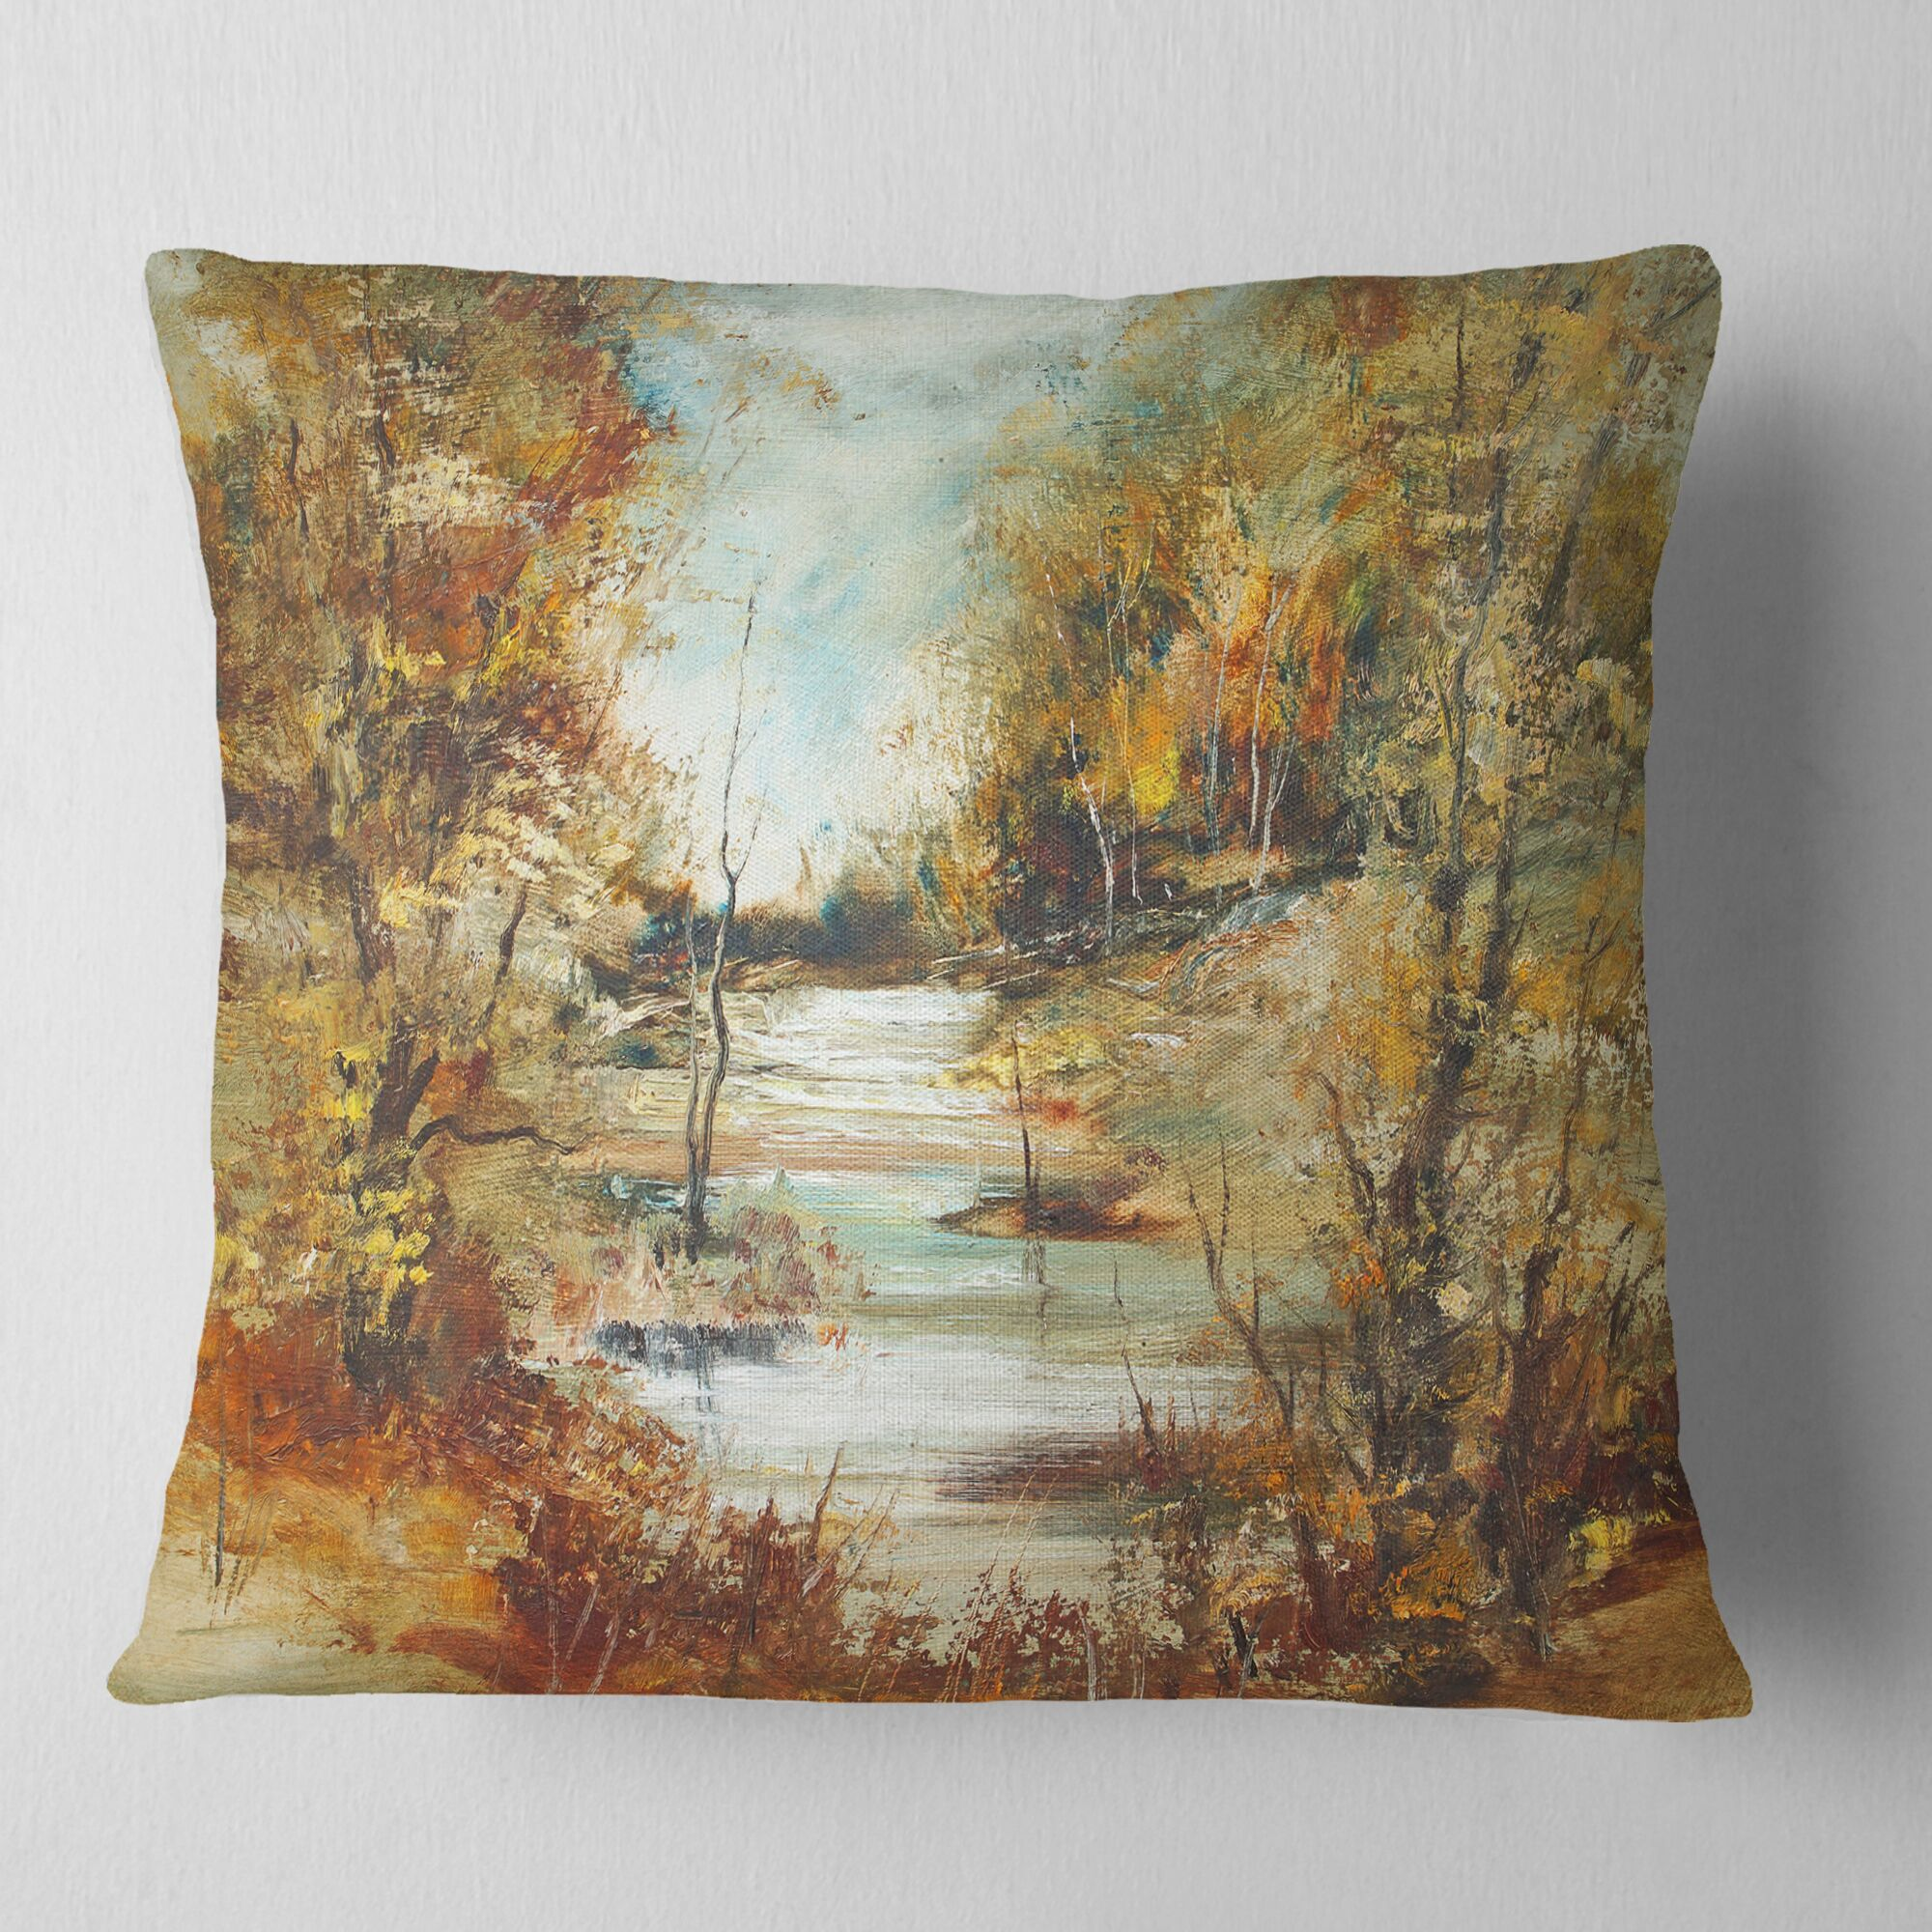 Landscape River in Forest Pillow Size: 16